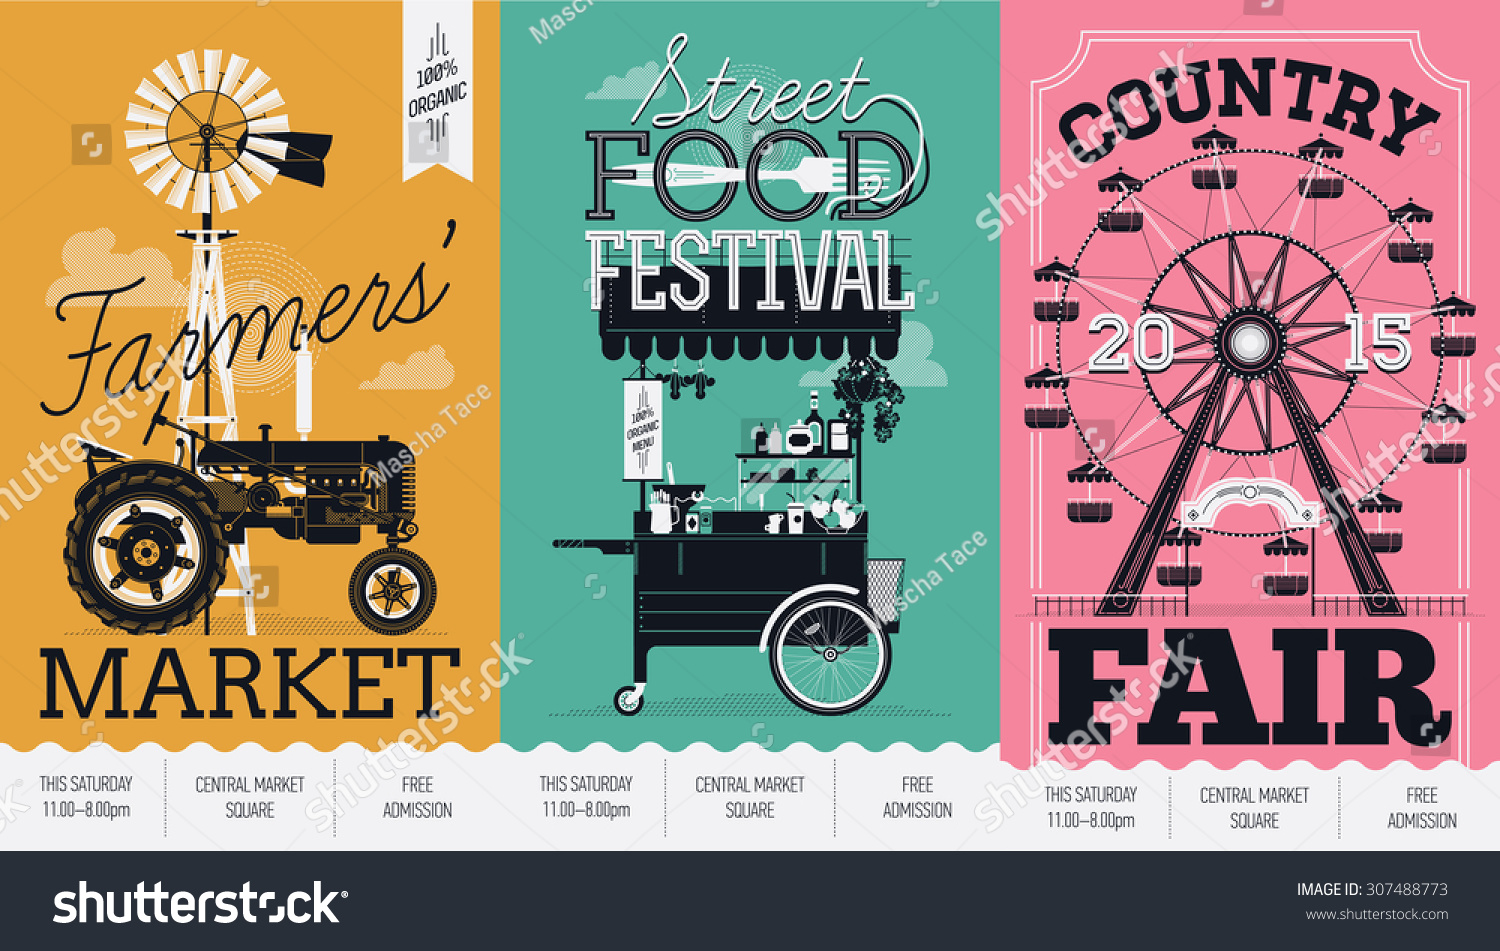 Beautiful Vector Detailed Event Posters Set Stock Vector 307488773 ... for Creative Event Posters  55nar